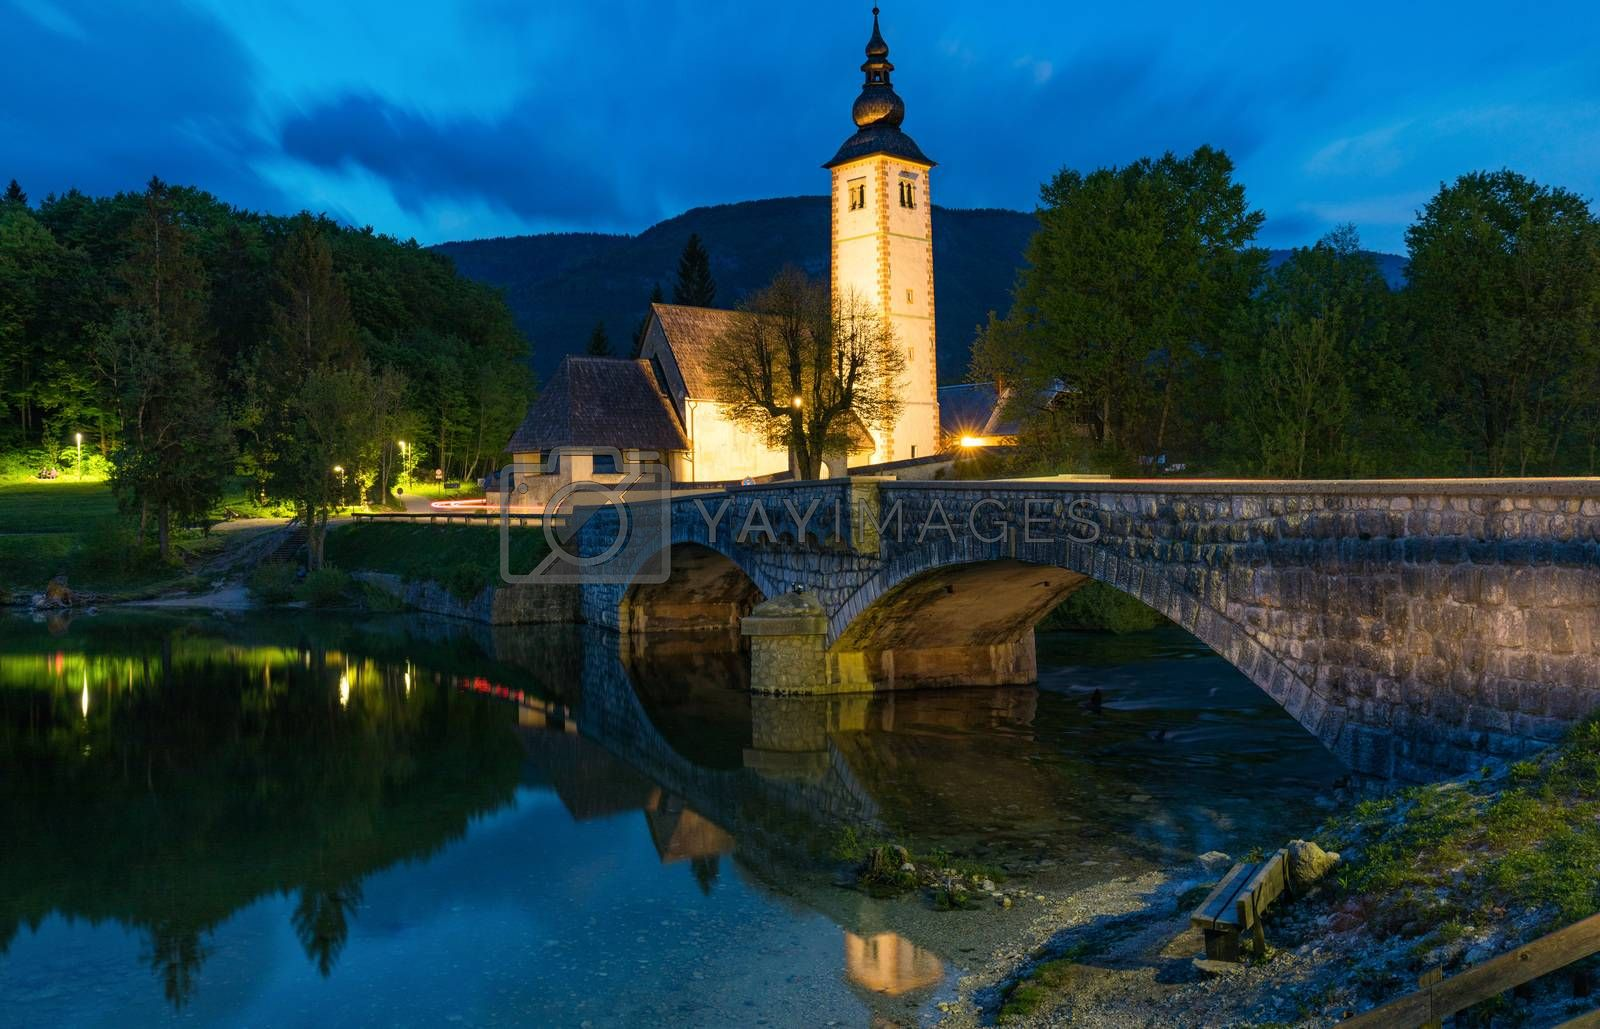 Church of Sv. John the Baptist and a bridge by the Bohinj lake in night, Slovenia. Church of St John the Baptist with bridge. Triglav National Park, Julian Alps, Slovenia, Europe